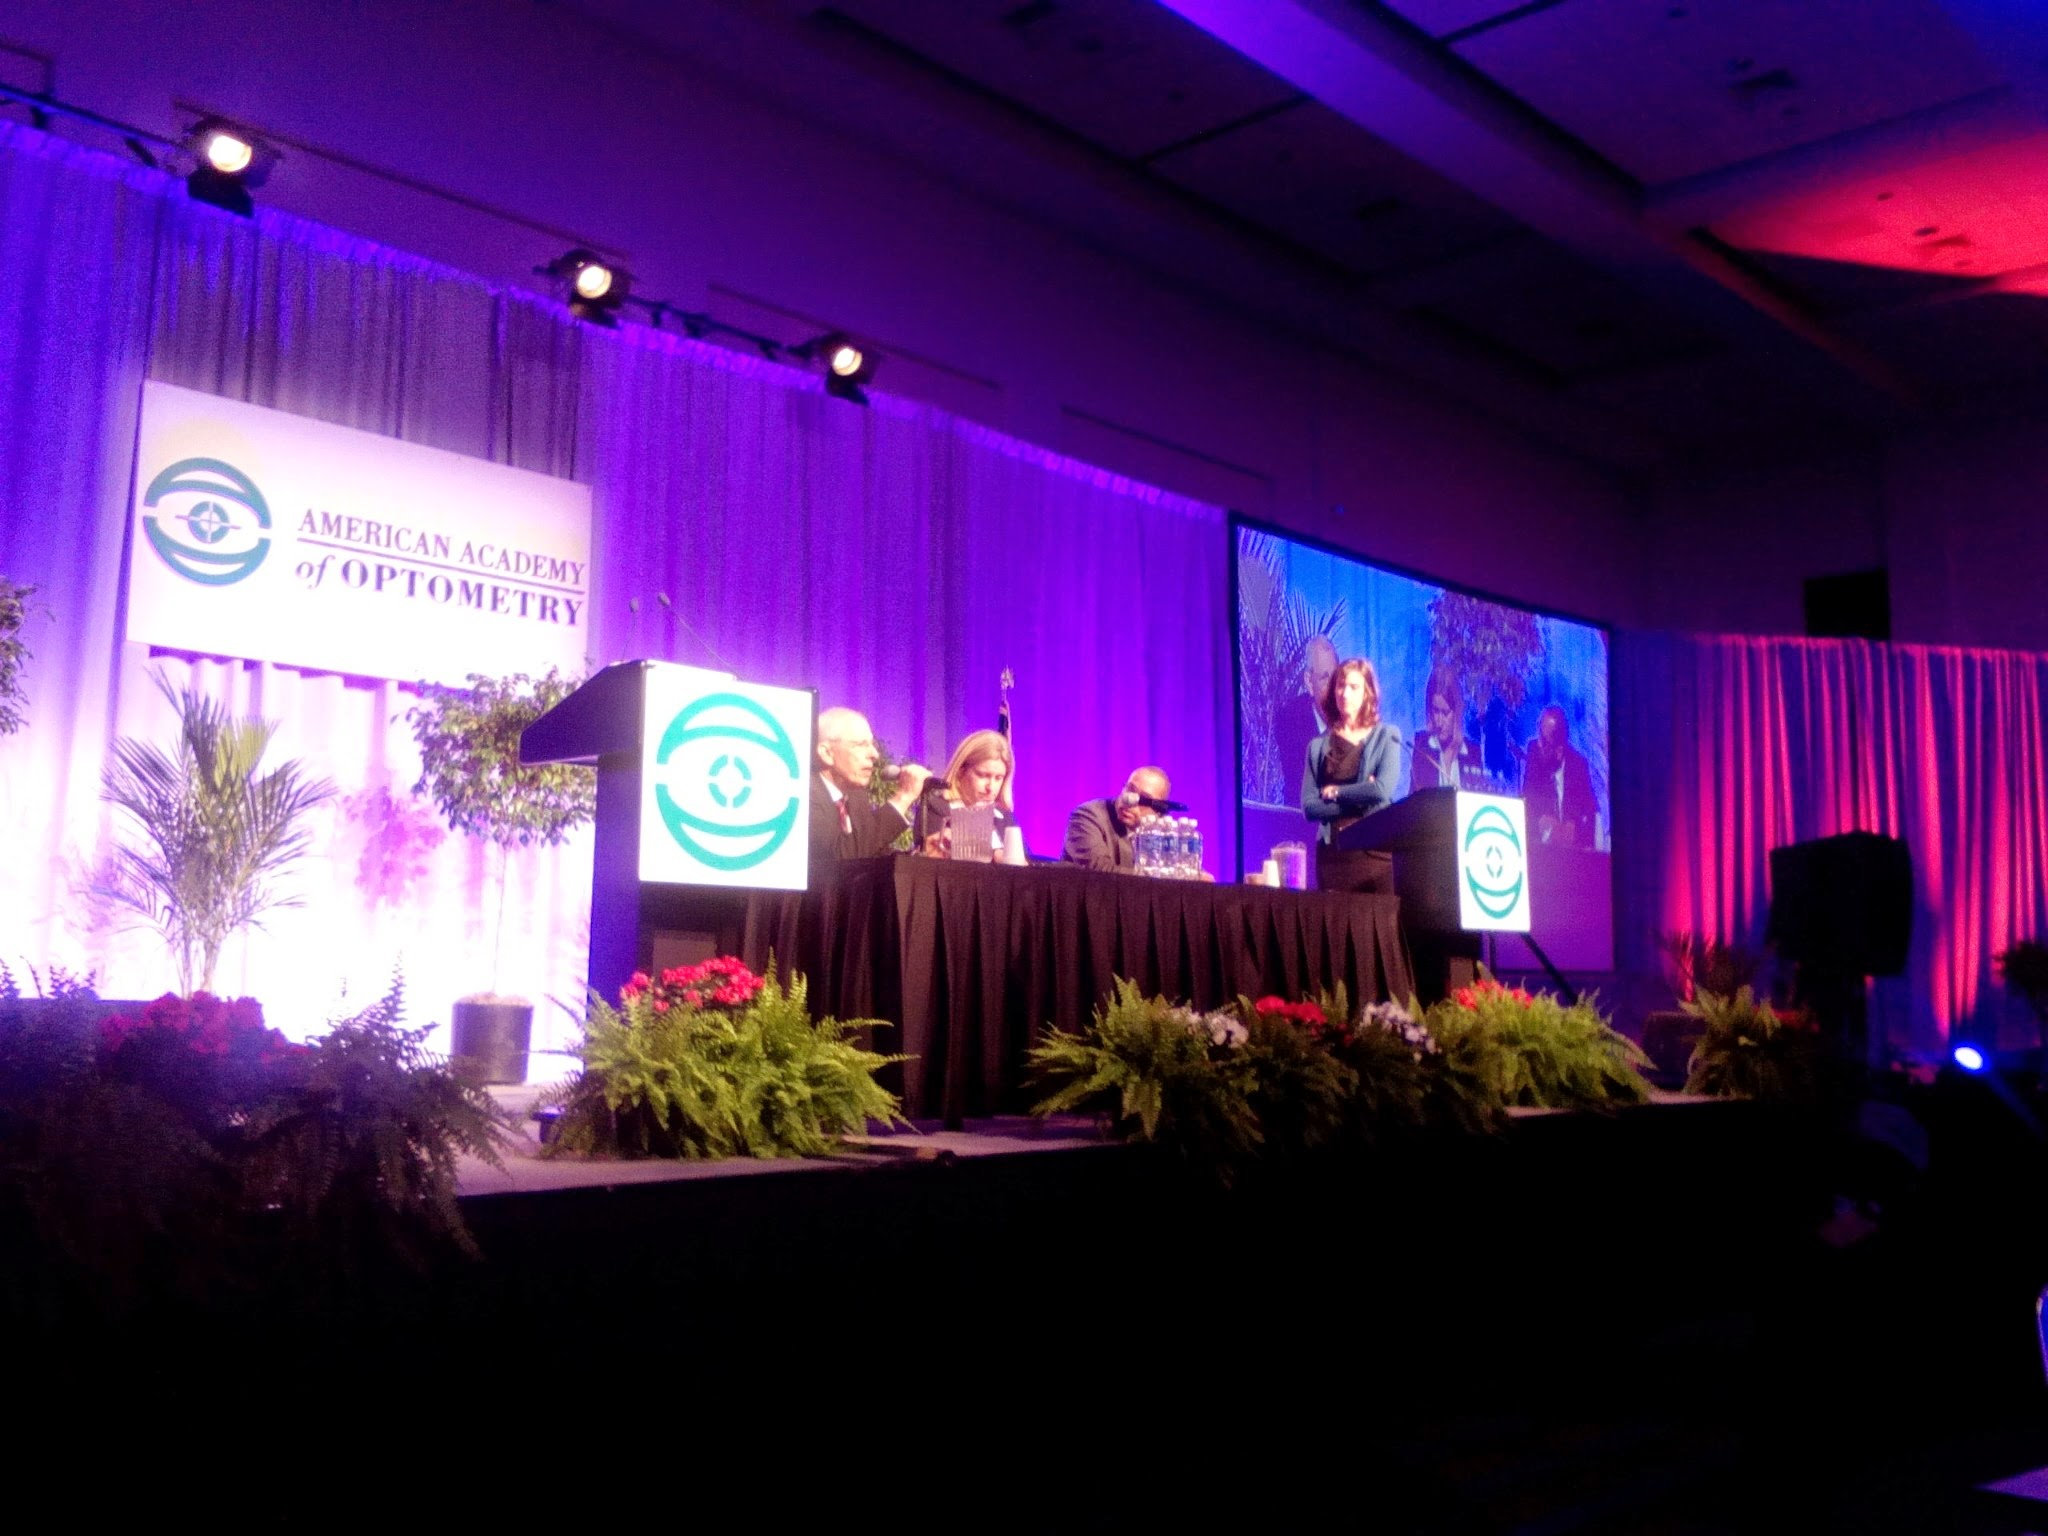 The American Academy of Optometry 2014